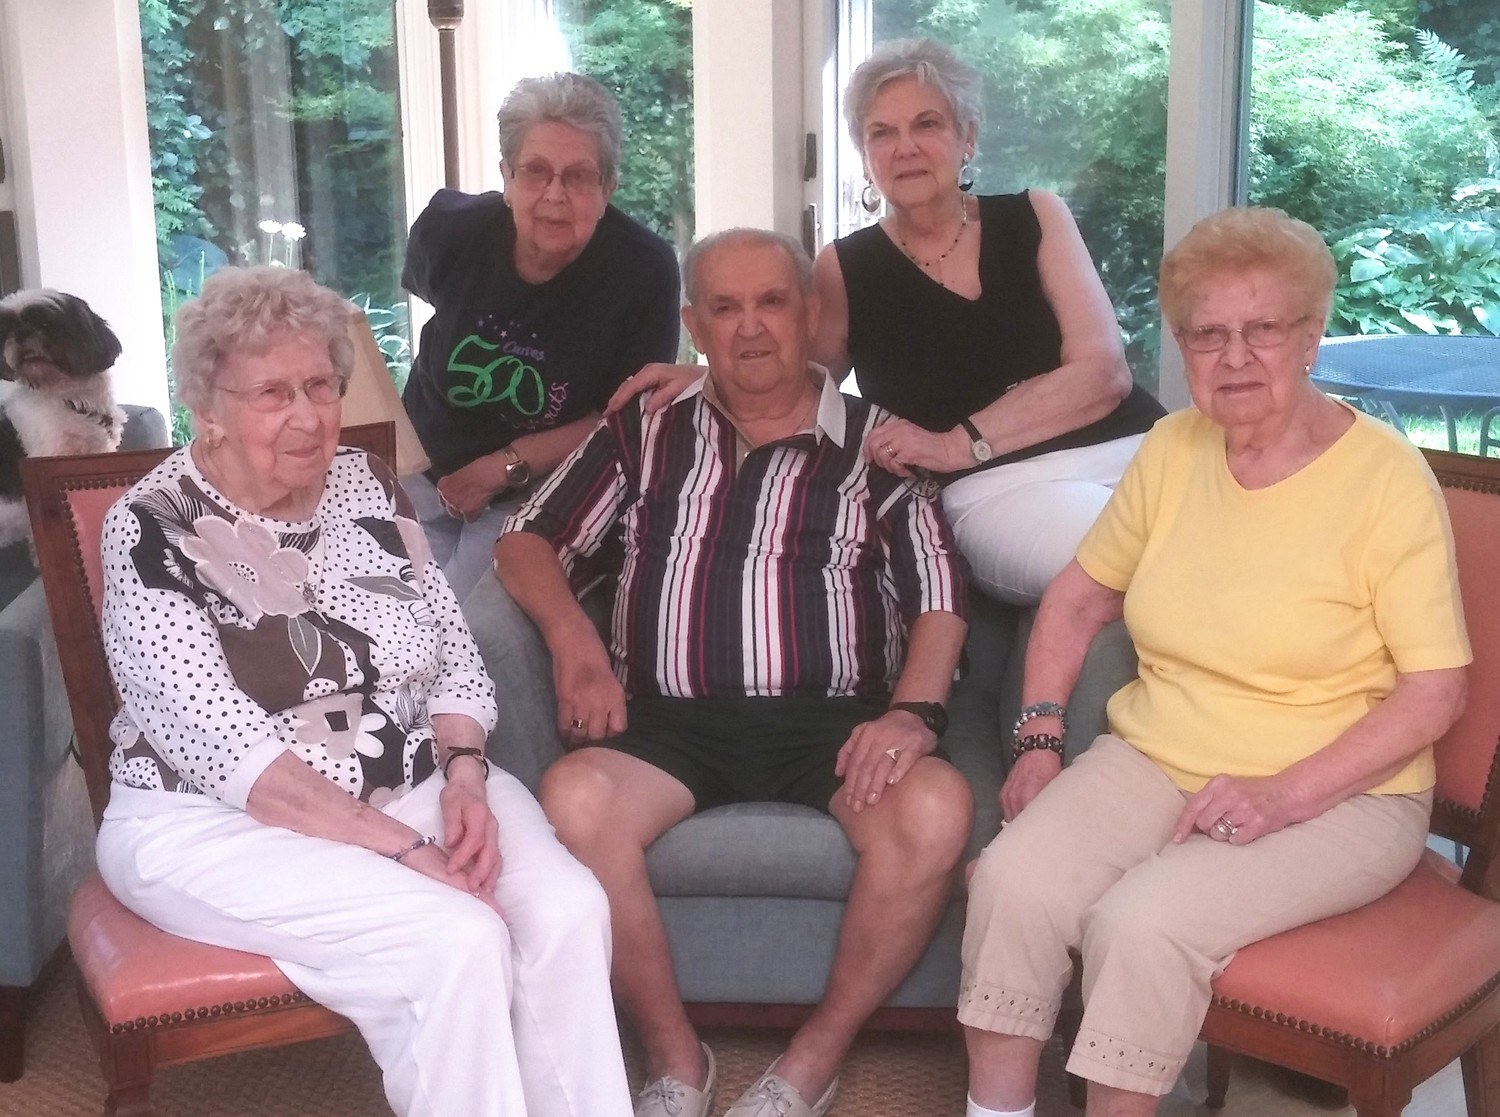 Stella Santos, Theresa Caduto, the late Manuel Lima, Lydia Moniz and Lolly Martin in a recent sibling photo. They recently honored their 100 year old sister, Stella Santos.